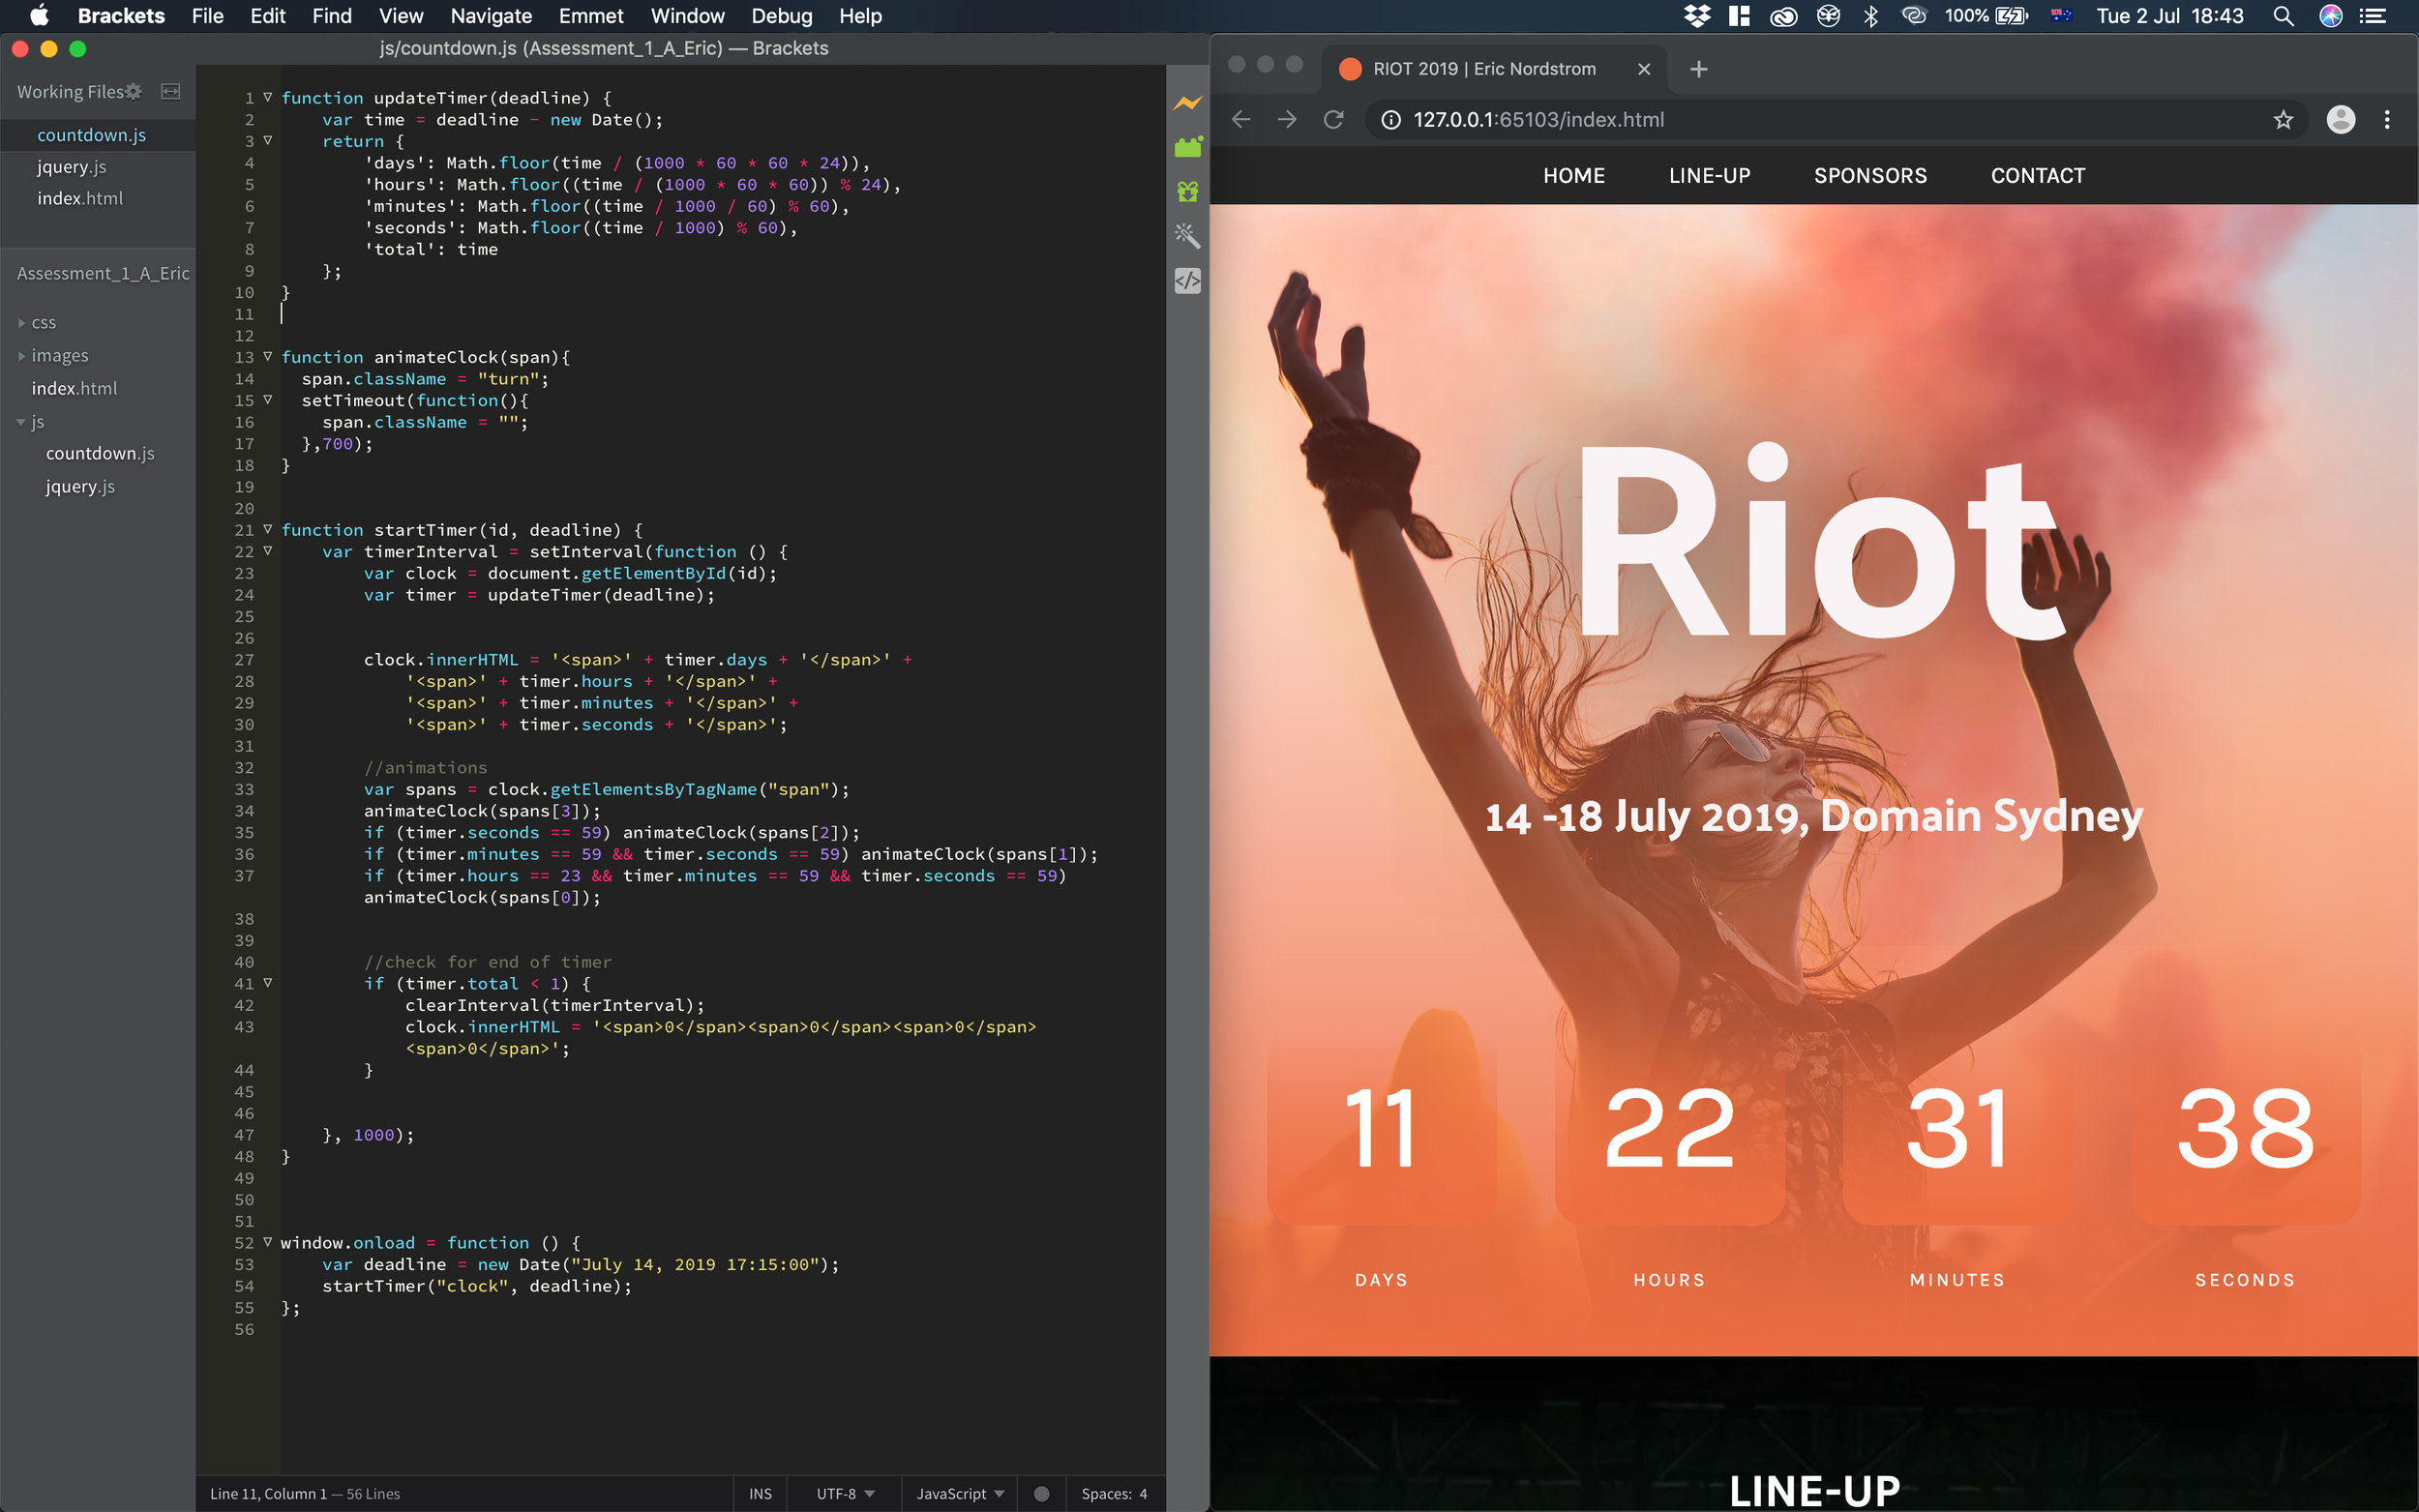 Countdown - My code in Brackets for the countdown clock. Outcome: I learned more about JavaScript in this project and the challenge was to code with JavaScript because I am new to it, but in the end it all worked out